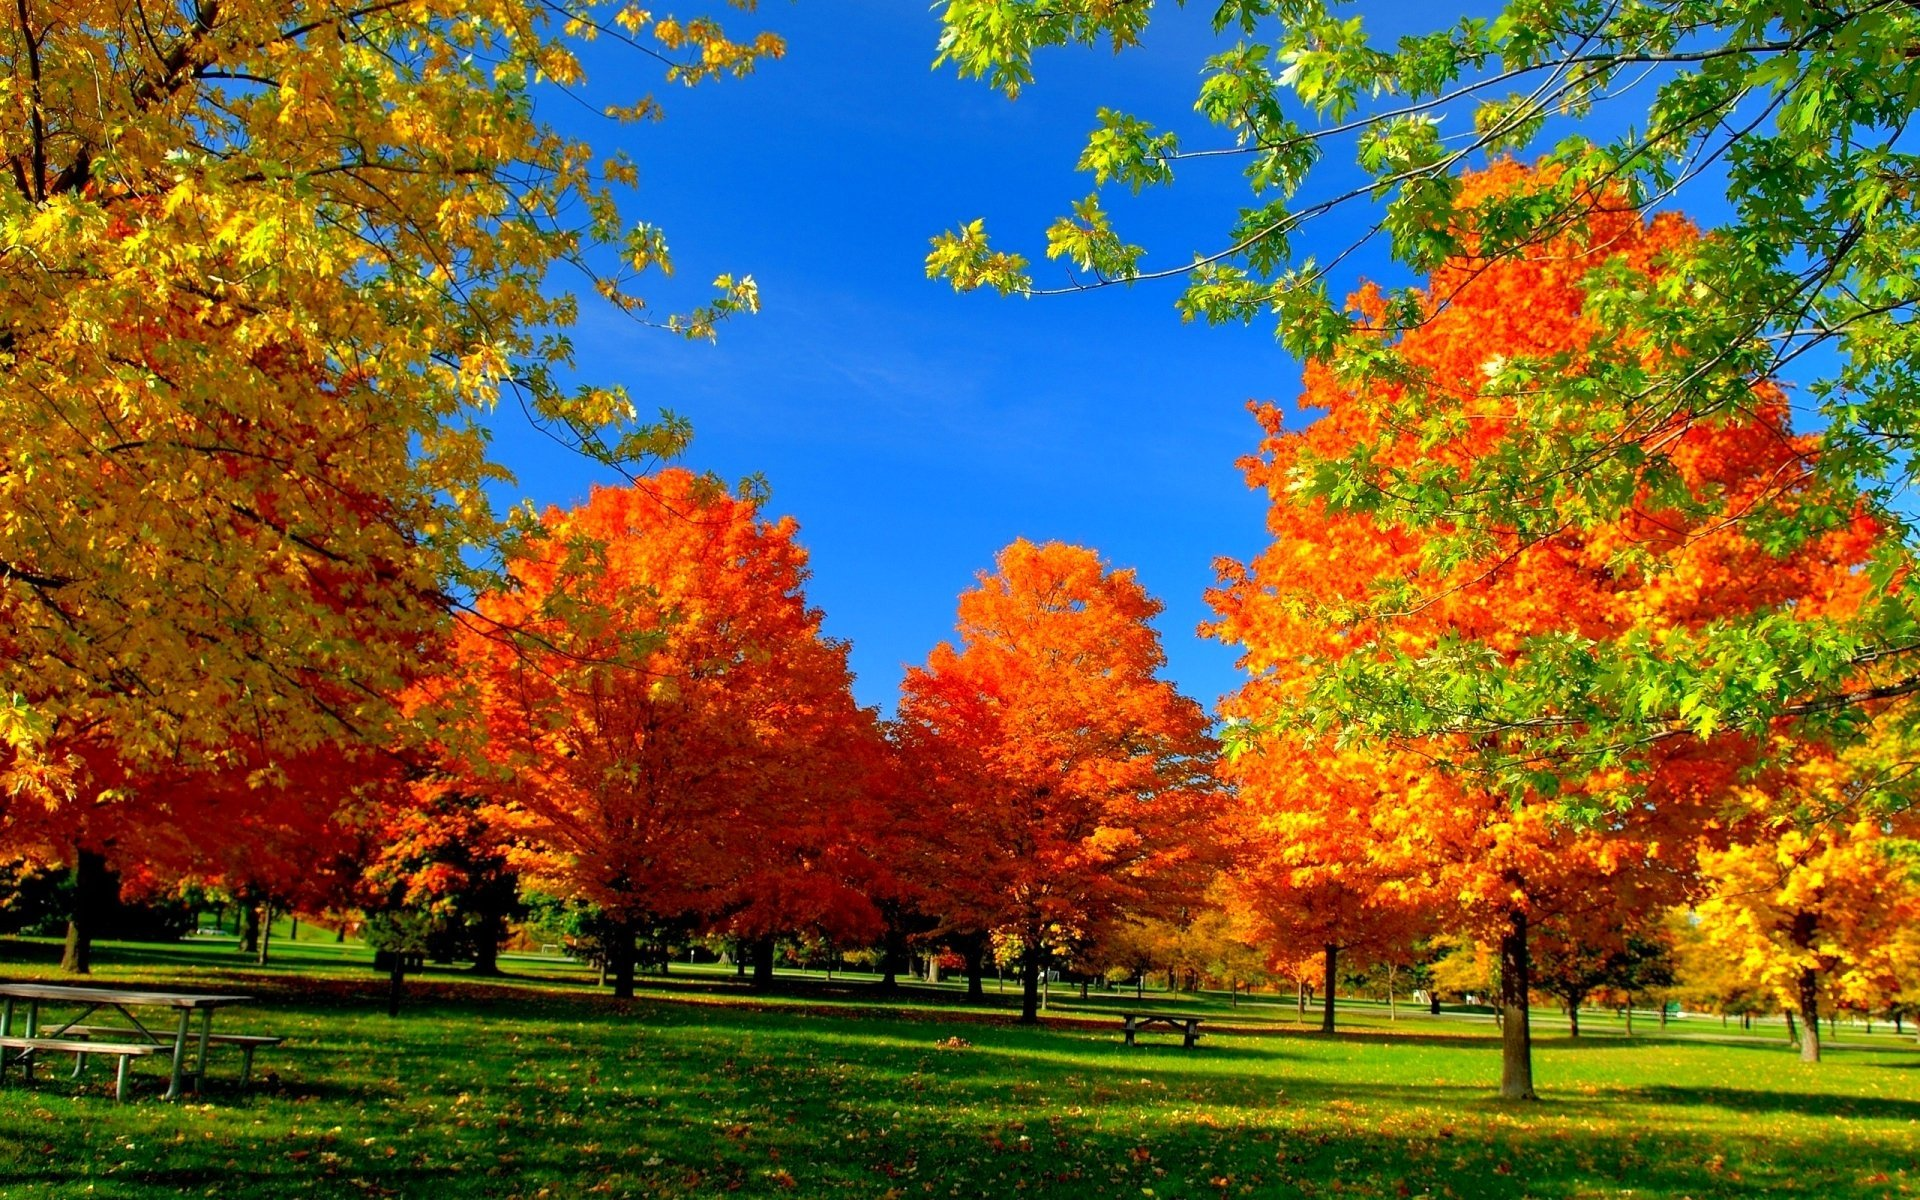 Autumn Trees in the Park HD Wallpaper | Background Image ...